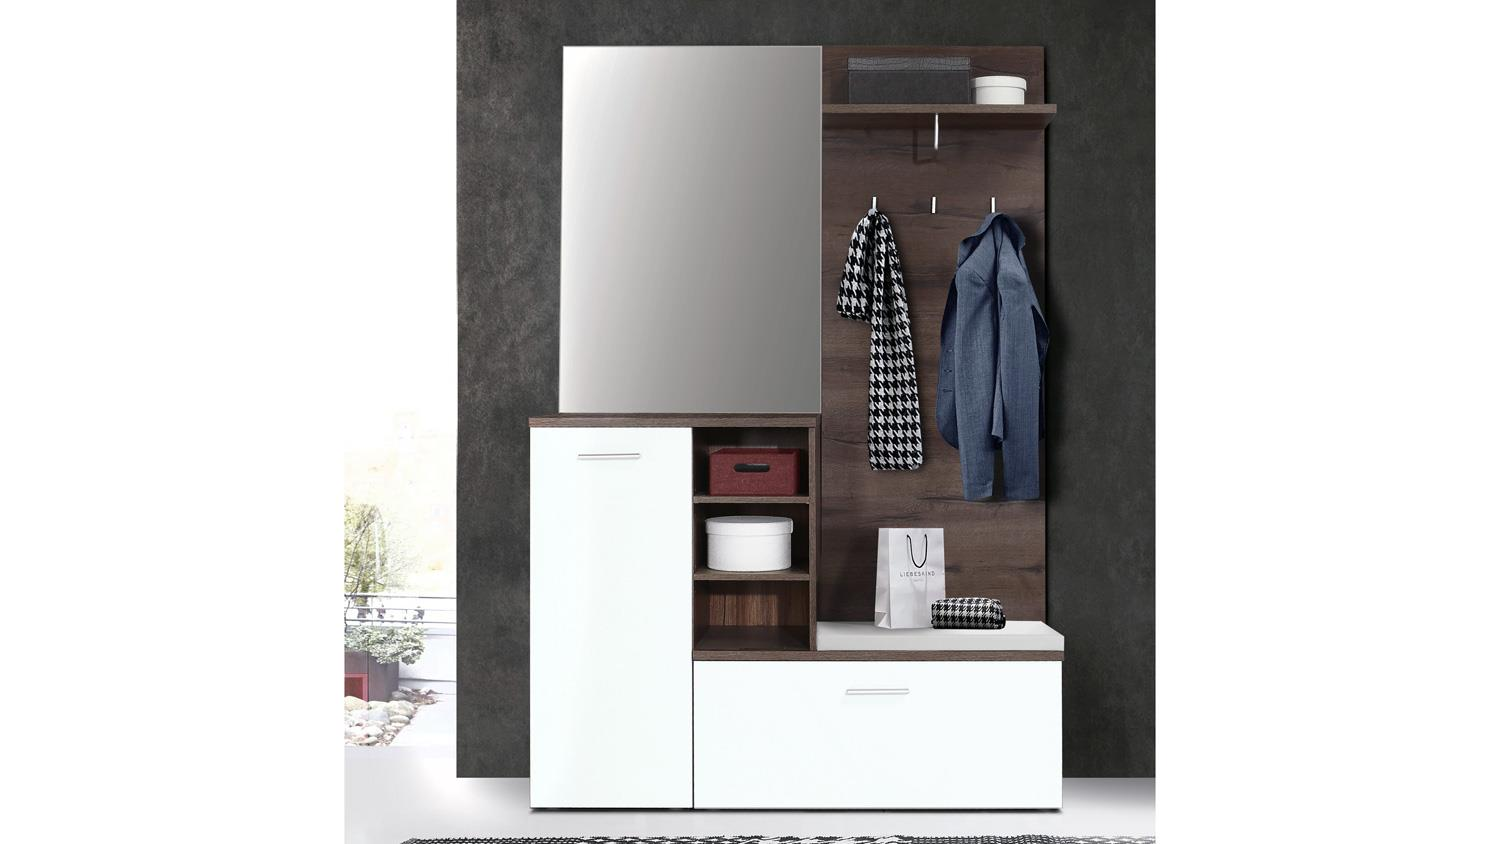 garderobe houston in schlammeiche und wei mit spiegel und sitzauflage. Black Bedroom Furniture Sets. Home Design Ideas